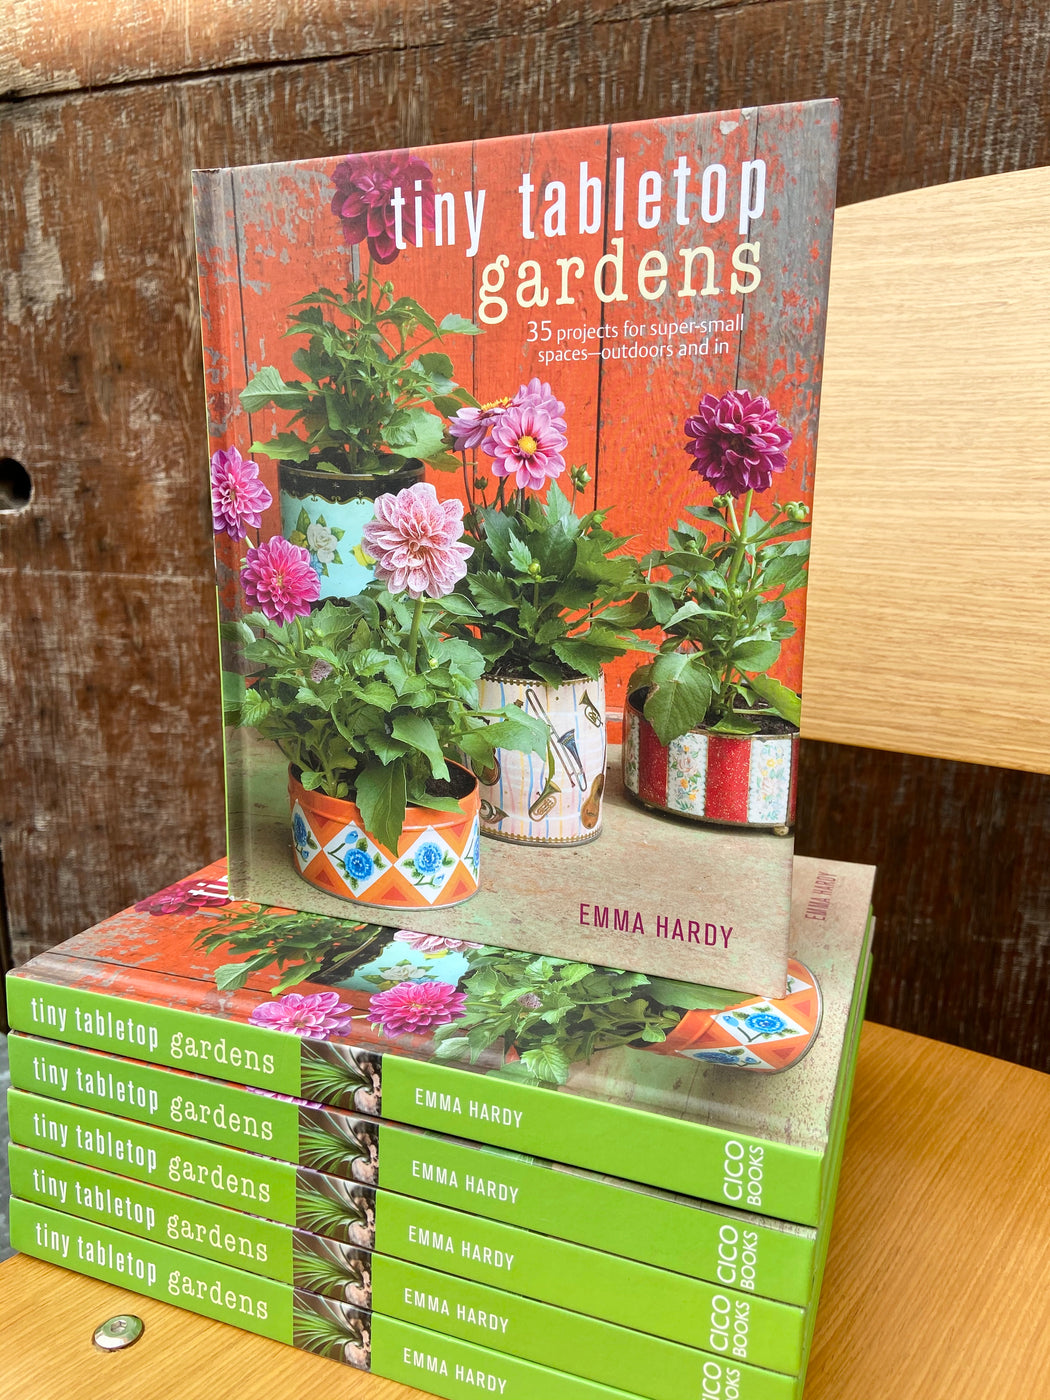 No matter how small your space you will find these 35 projects simple and achievable. There are little ferns under glass domes, edible plants including blueberries and strawberries, bright flowers in vintage tins, and much more, all with step-by-step instructions and helpful planting and aftercare tips from expert gardener Emma Hardy.